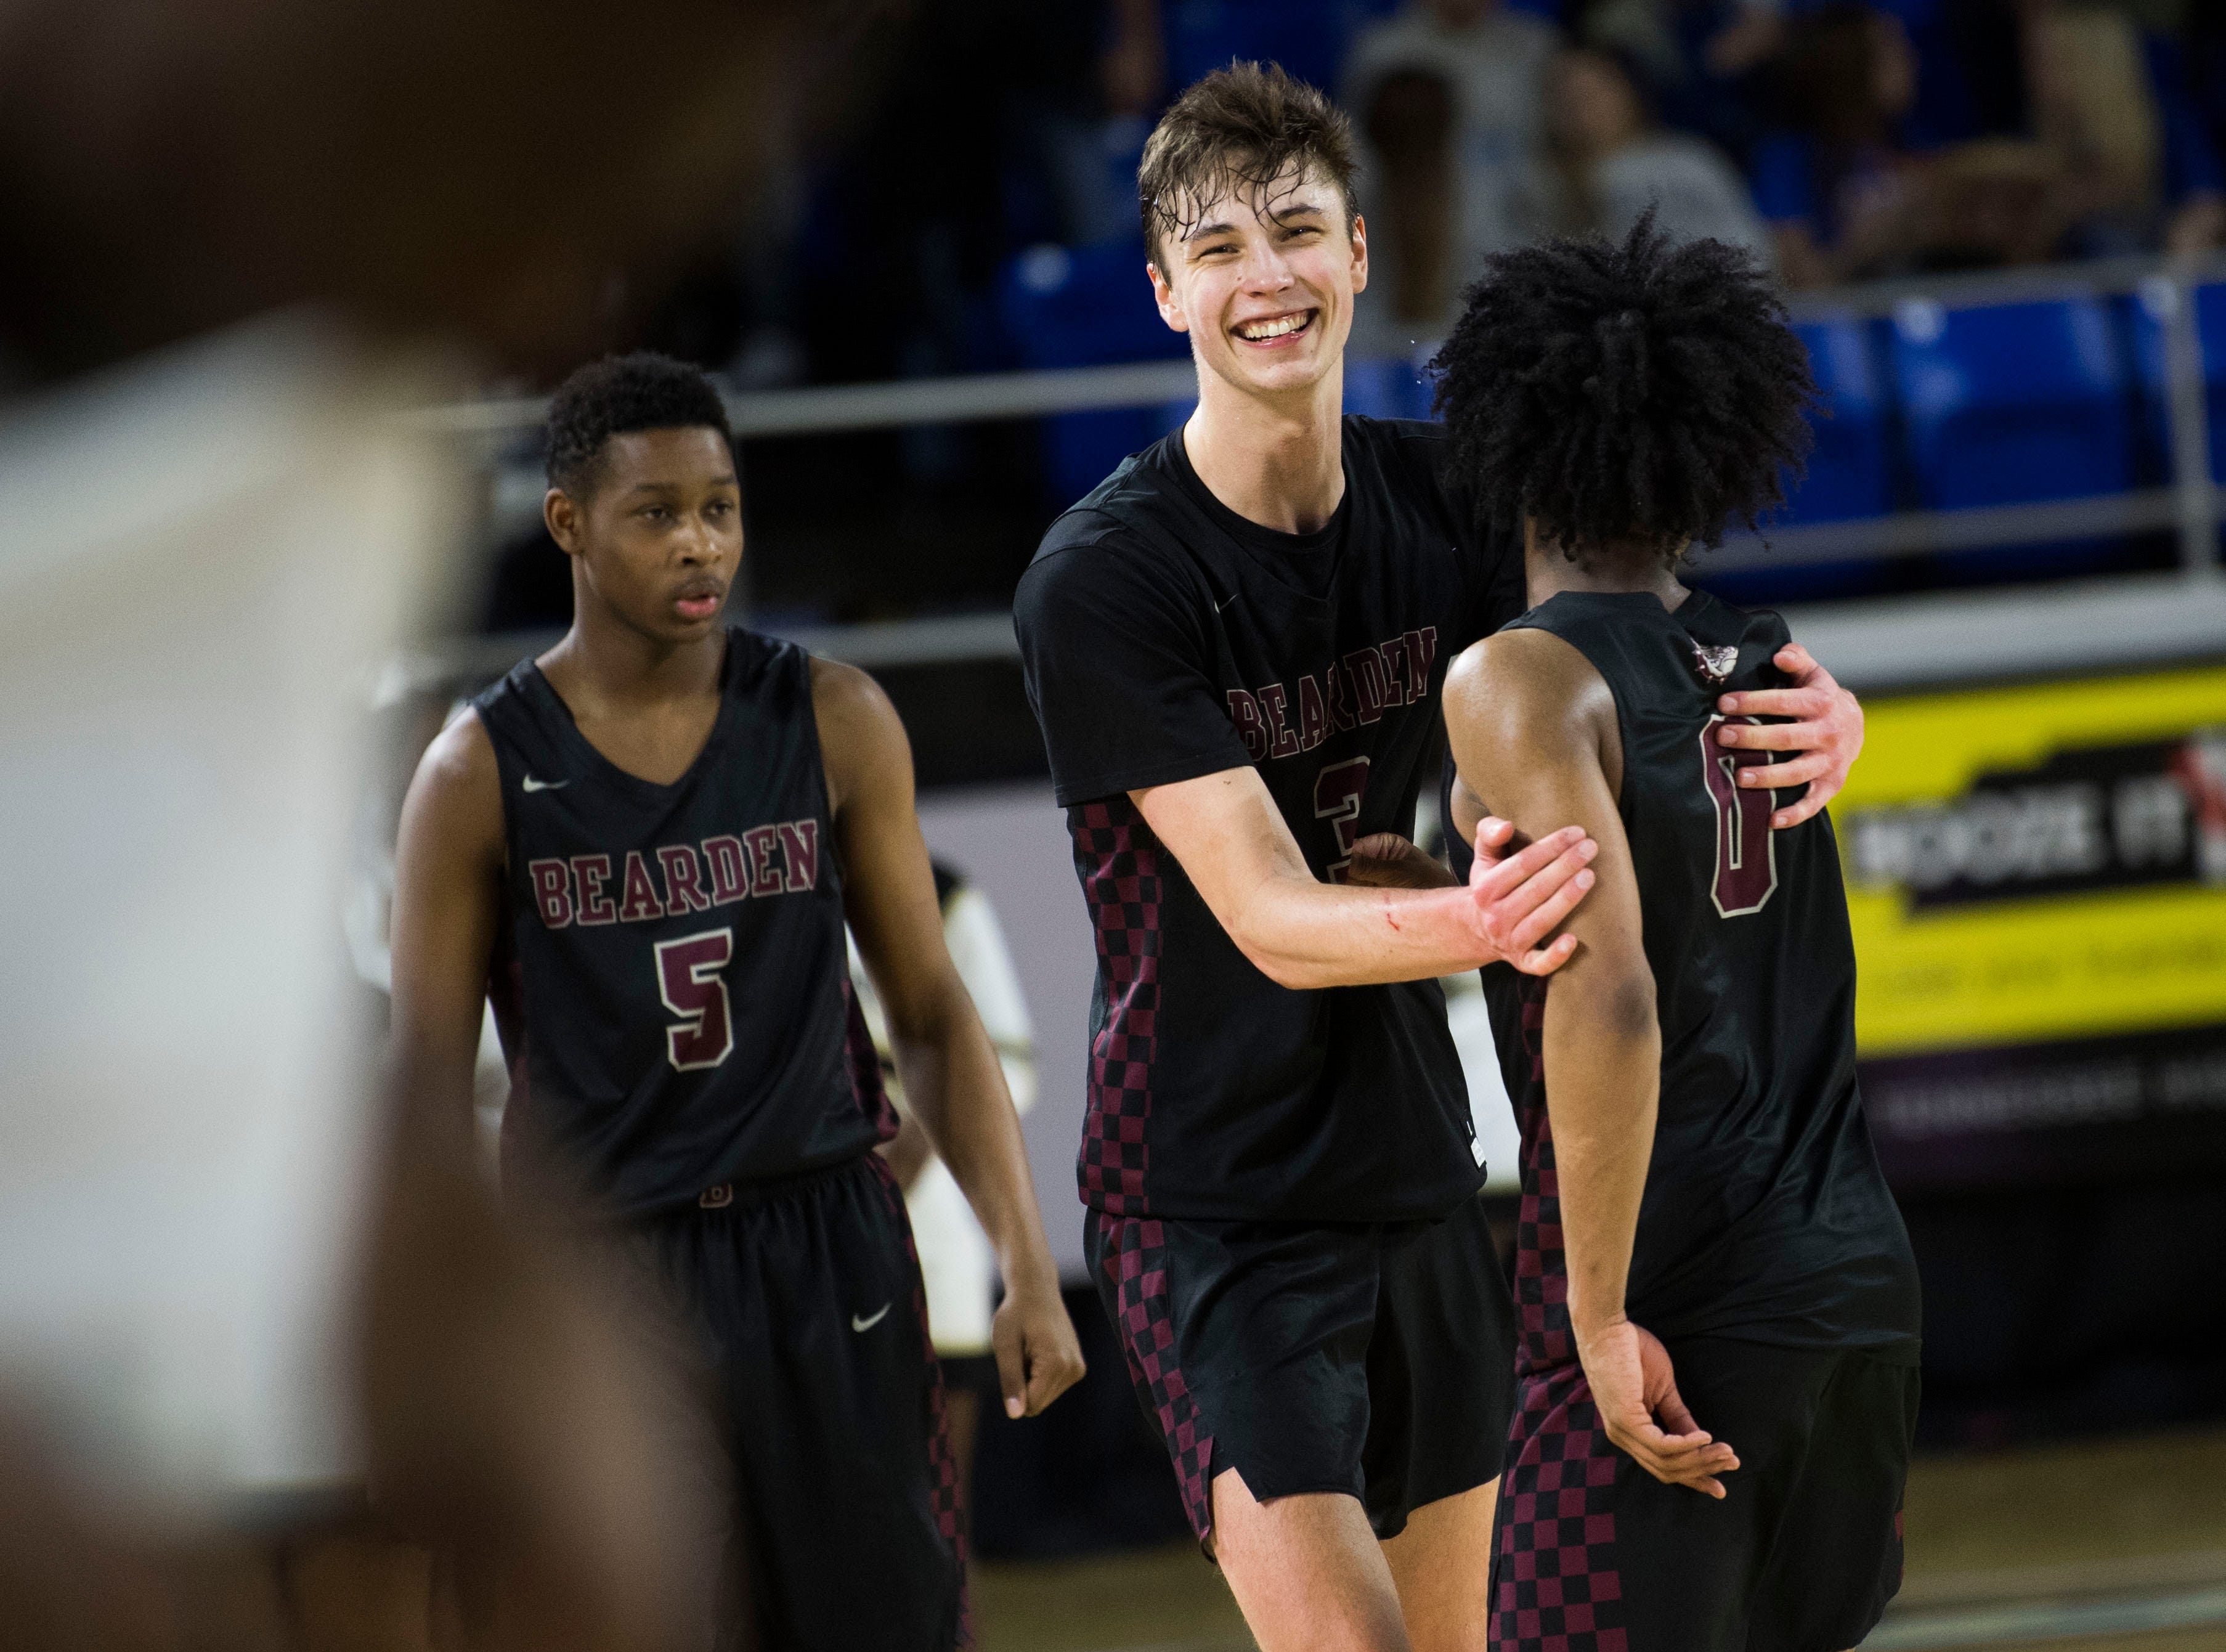 Bearden's Drew Pember (3) congratulates Bearden's Ques Glover (0) after a TSSAA AAA state semifinal game between Whitehaven and Bearden at the Murphy Center in Murfreesboro, Friday, March 15, 2019. Bearden defeated Whitehaven 76-60.